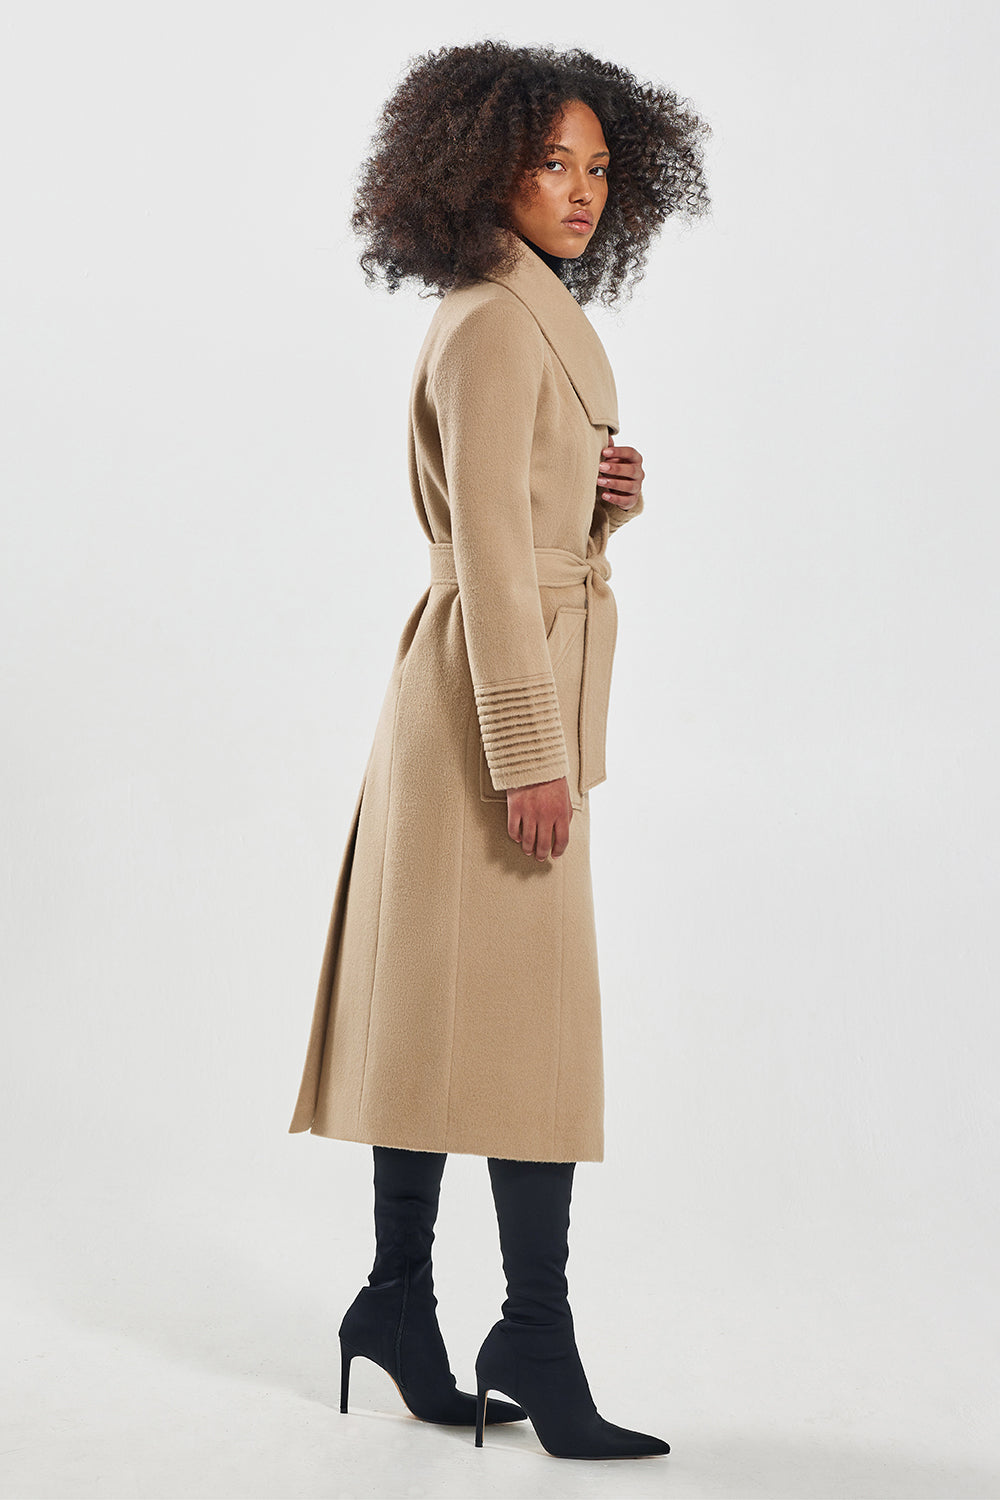 Sentaler Long Wide Collar Wrap Coat featured in Baby Alpaca and available in Camel. Seen from side.